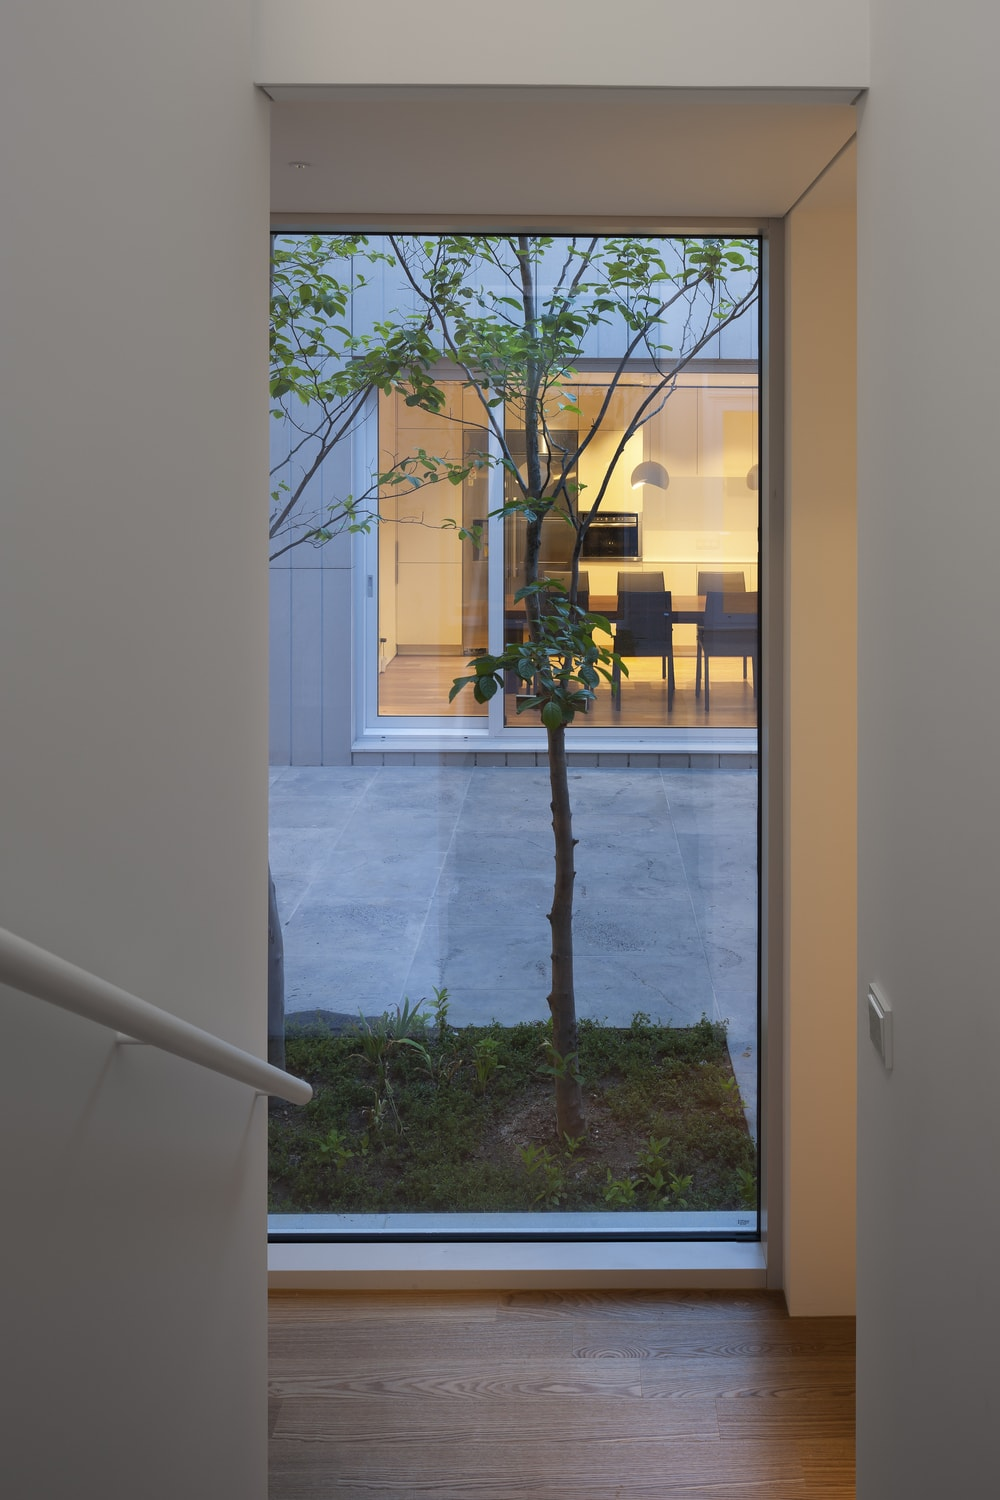 This is a view from the vantage of the staircase inside through to the courtyard and across to the dining area through the glass wall.